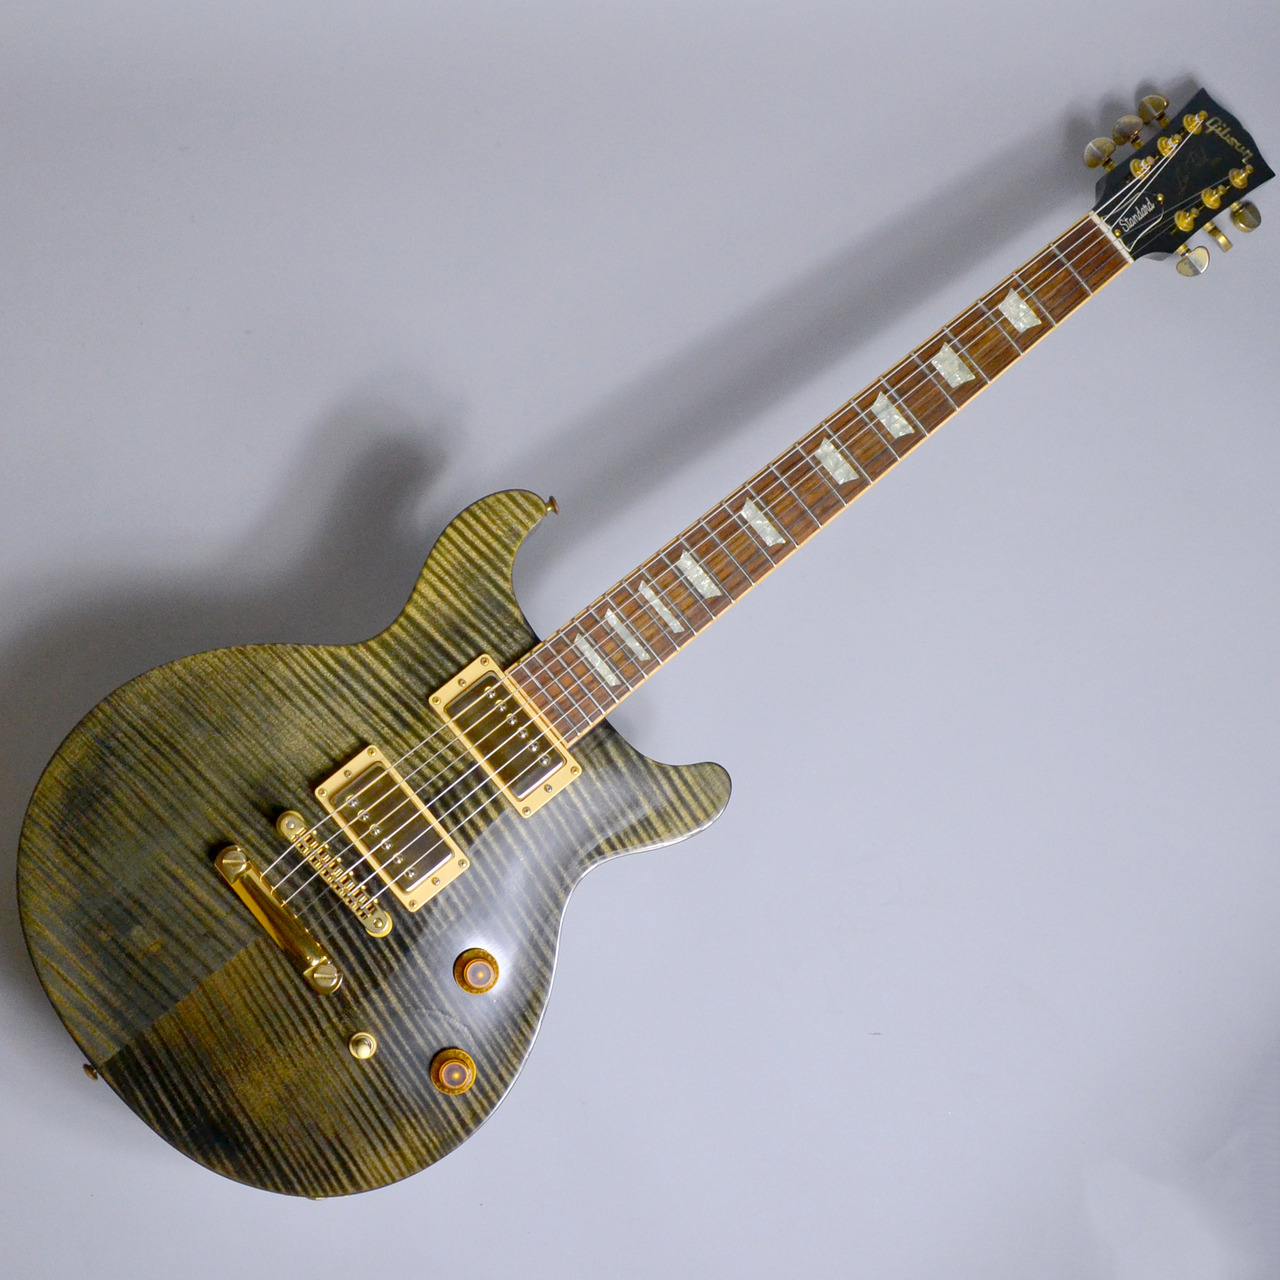 "Les Paul Standard ""DC"" Double Cutawayのボディトップ-アップ画像"